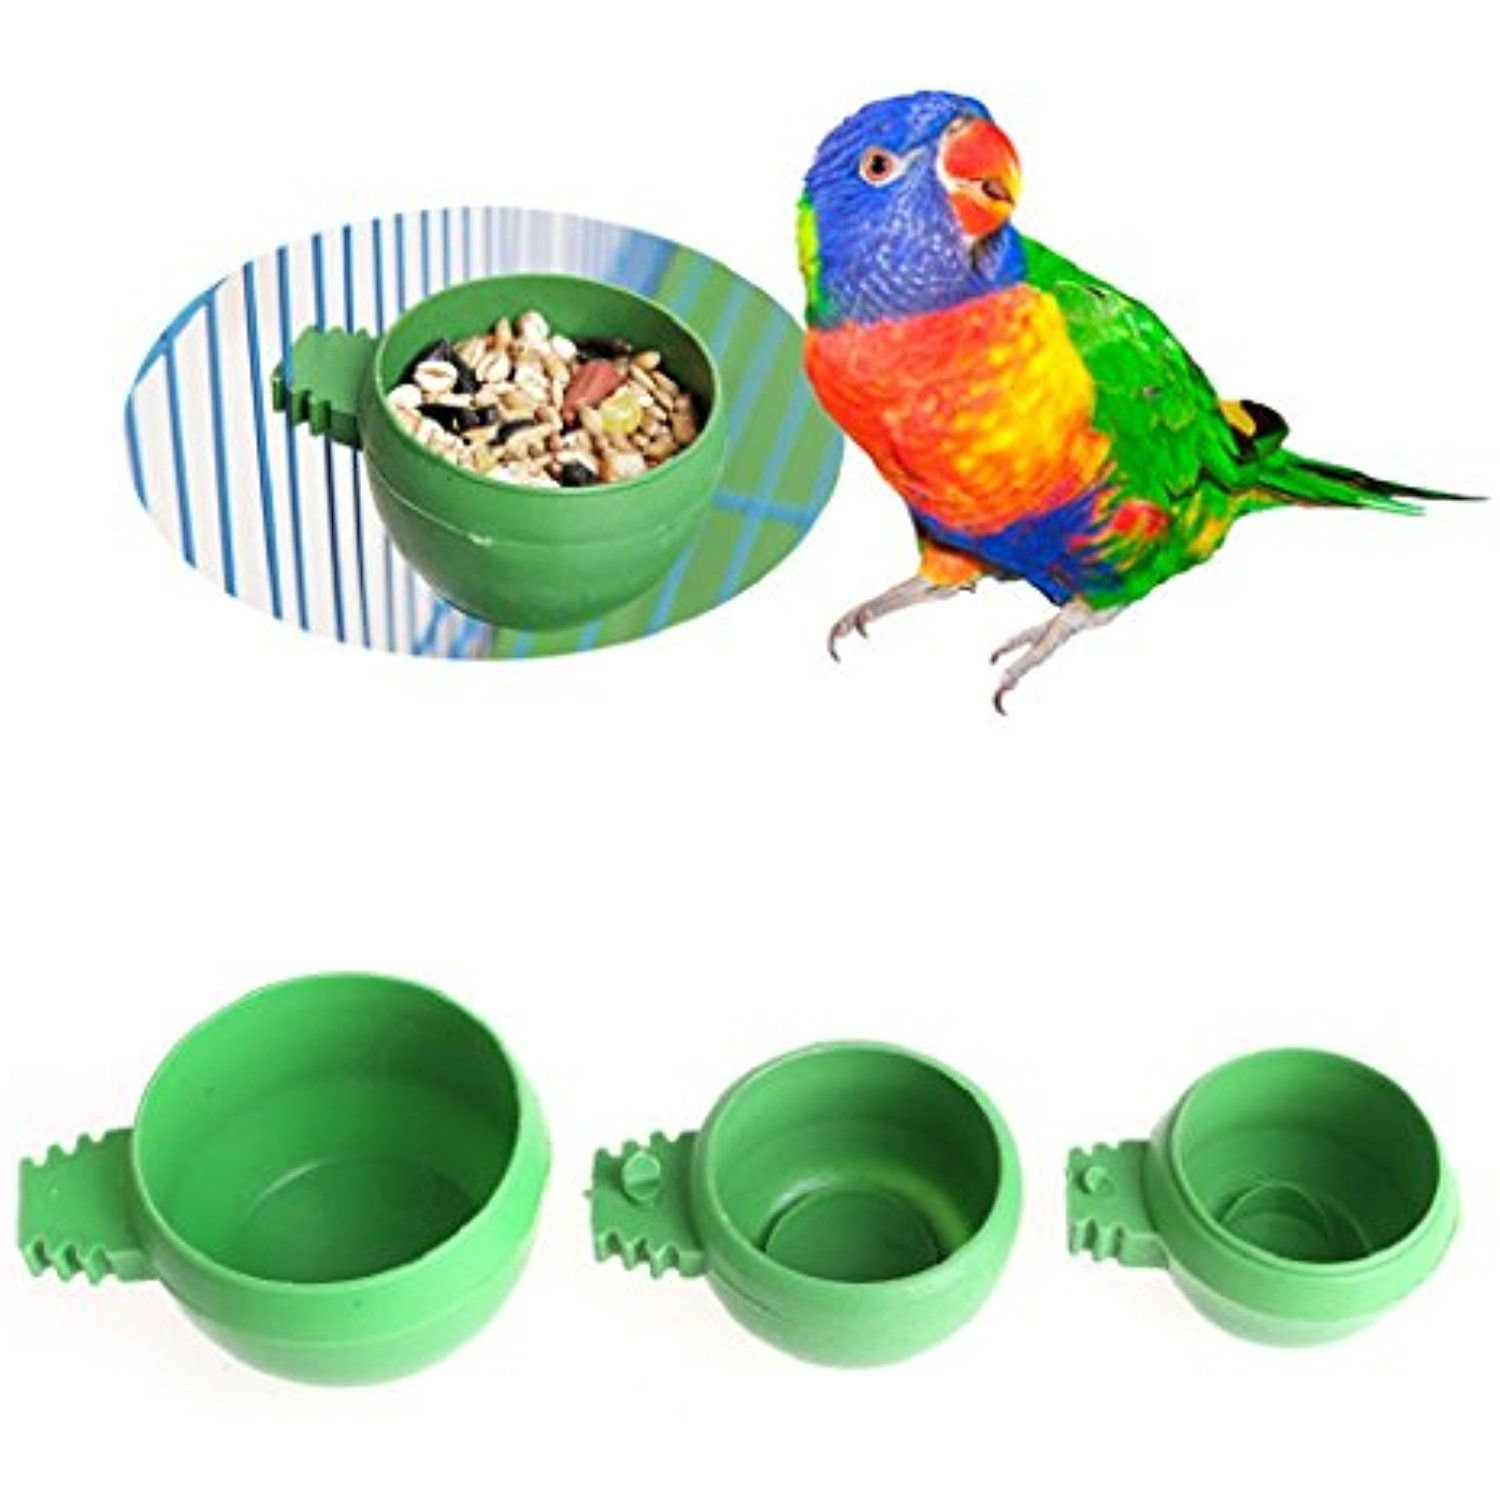 5x Bird Parrot Feeding Cups Cage Hanging Bowl Seed Water Food Dish Container